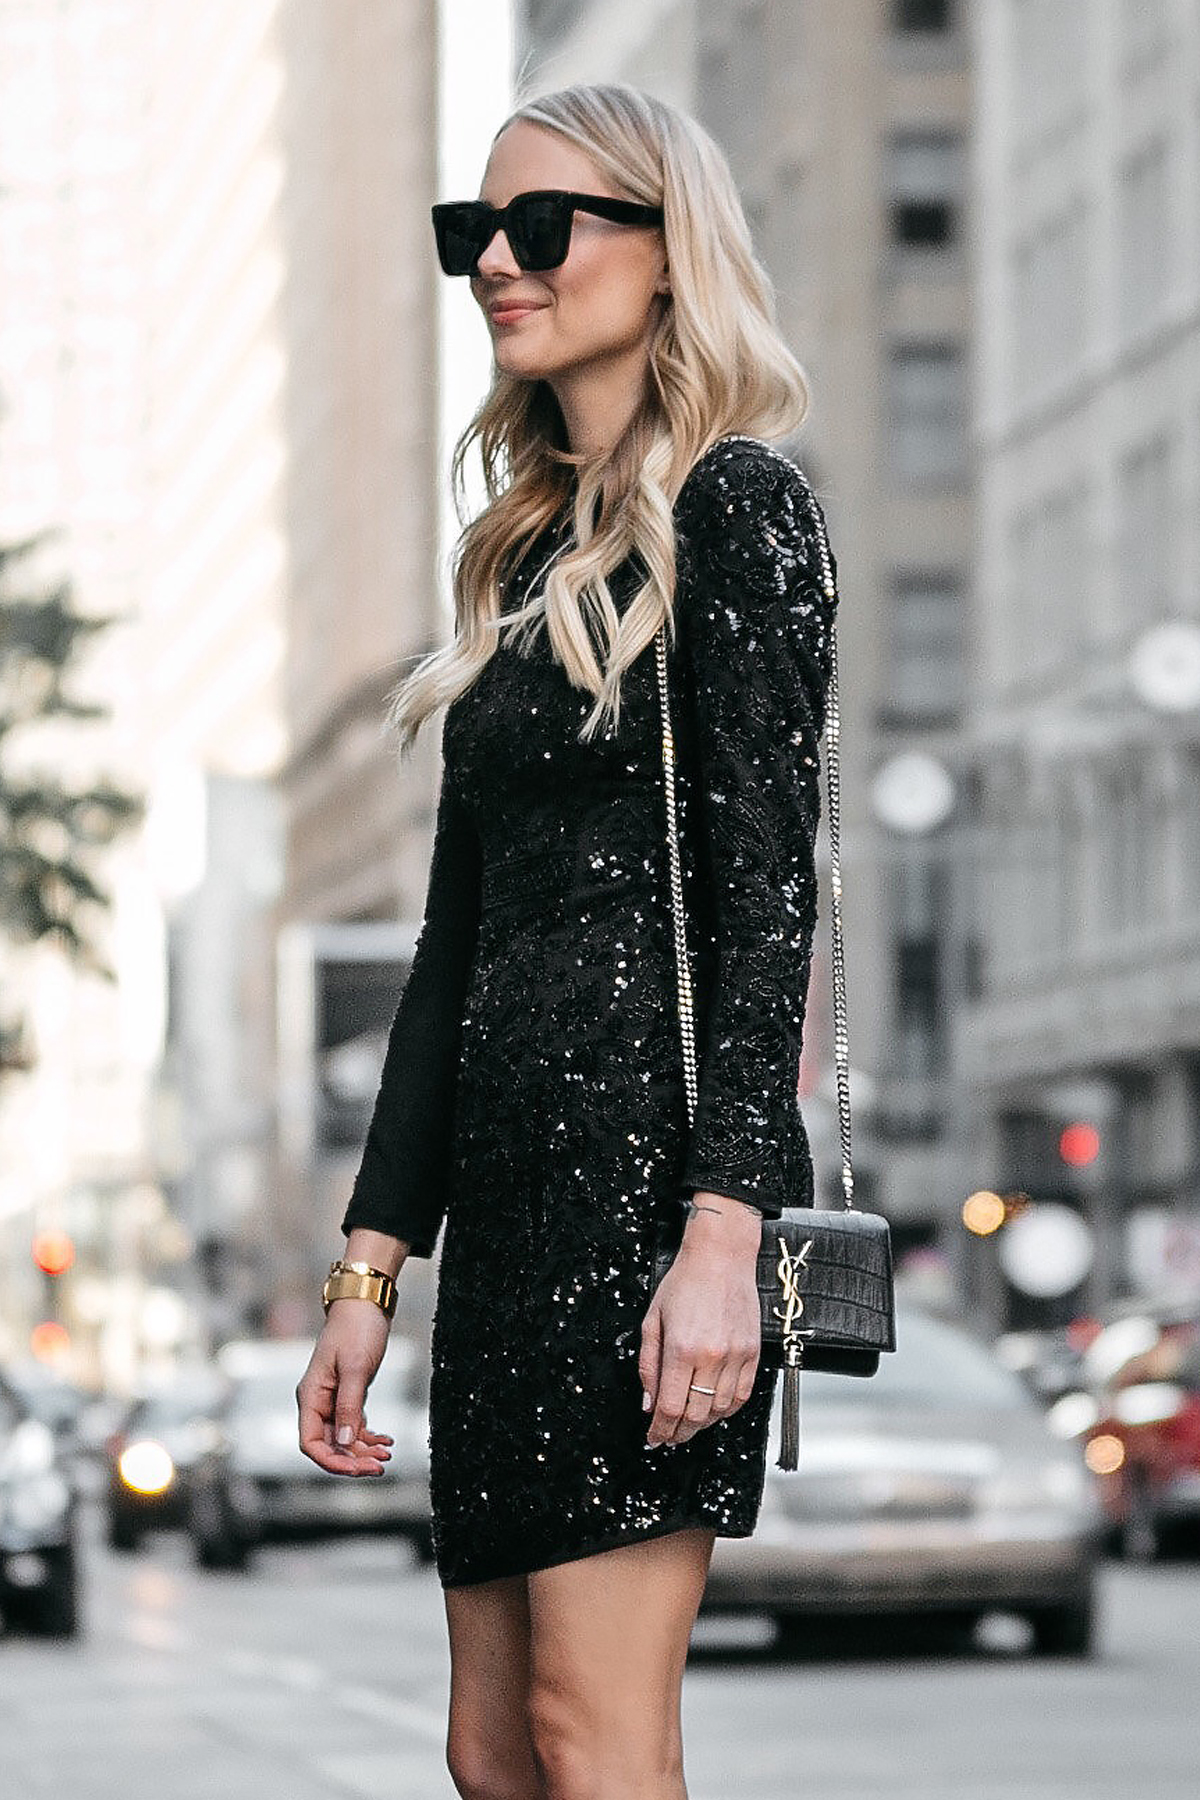 Blonde Woman Wearing Long Sleeve Black Sequin Dress Needle and Thread YSL Black Crocodile Crossbody Fashion Jackson Dallas Blogger Fashion Blogger Street Style NYE Outfit